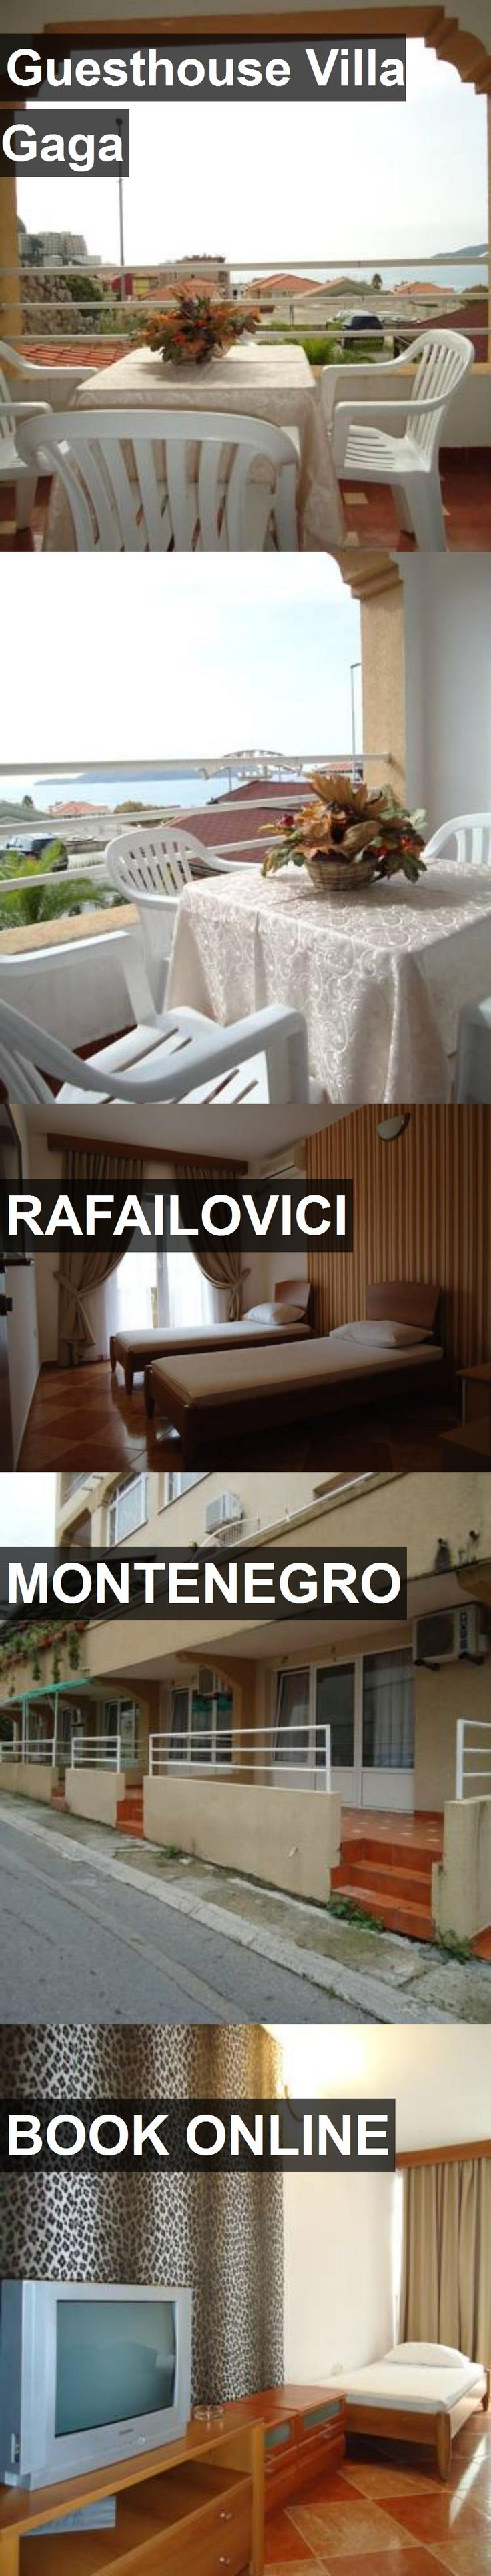 Hotel Guesthouse Villa Gaga in Rafailovici, Montenegro. For more information, photos, reviews and best prices please follow the link. #Montenegro #Rafailovici #travel #vacation #hotel